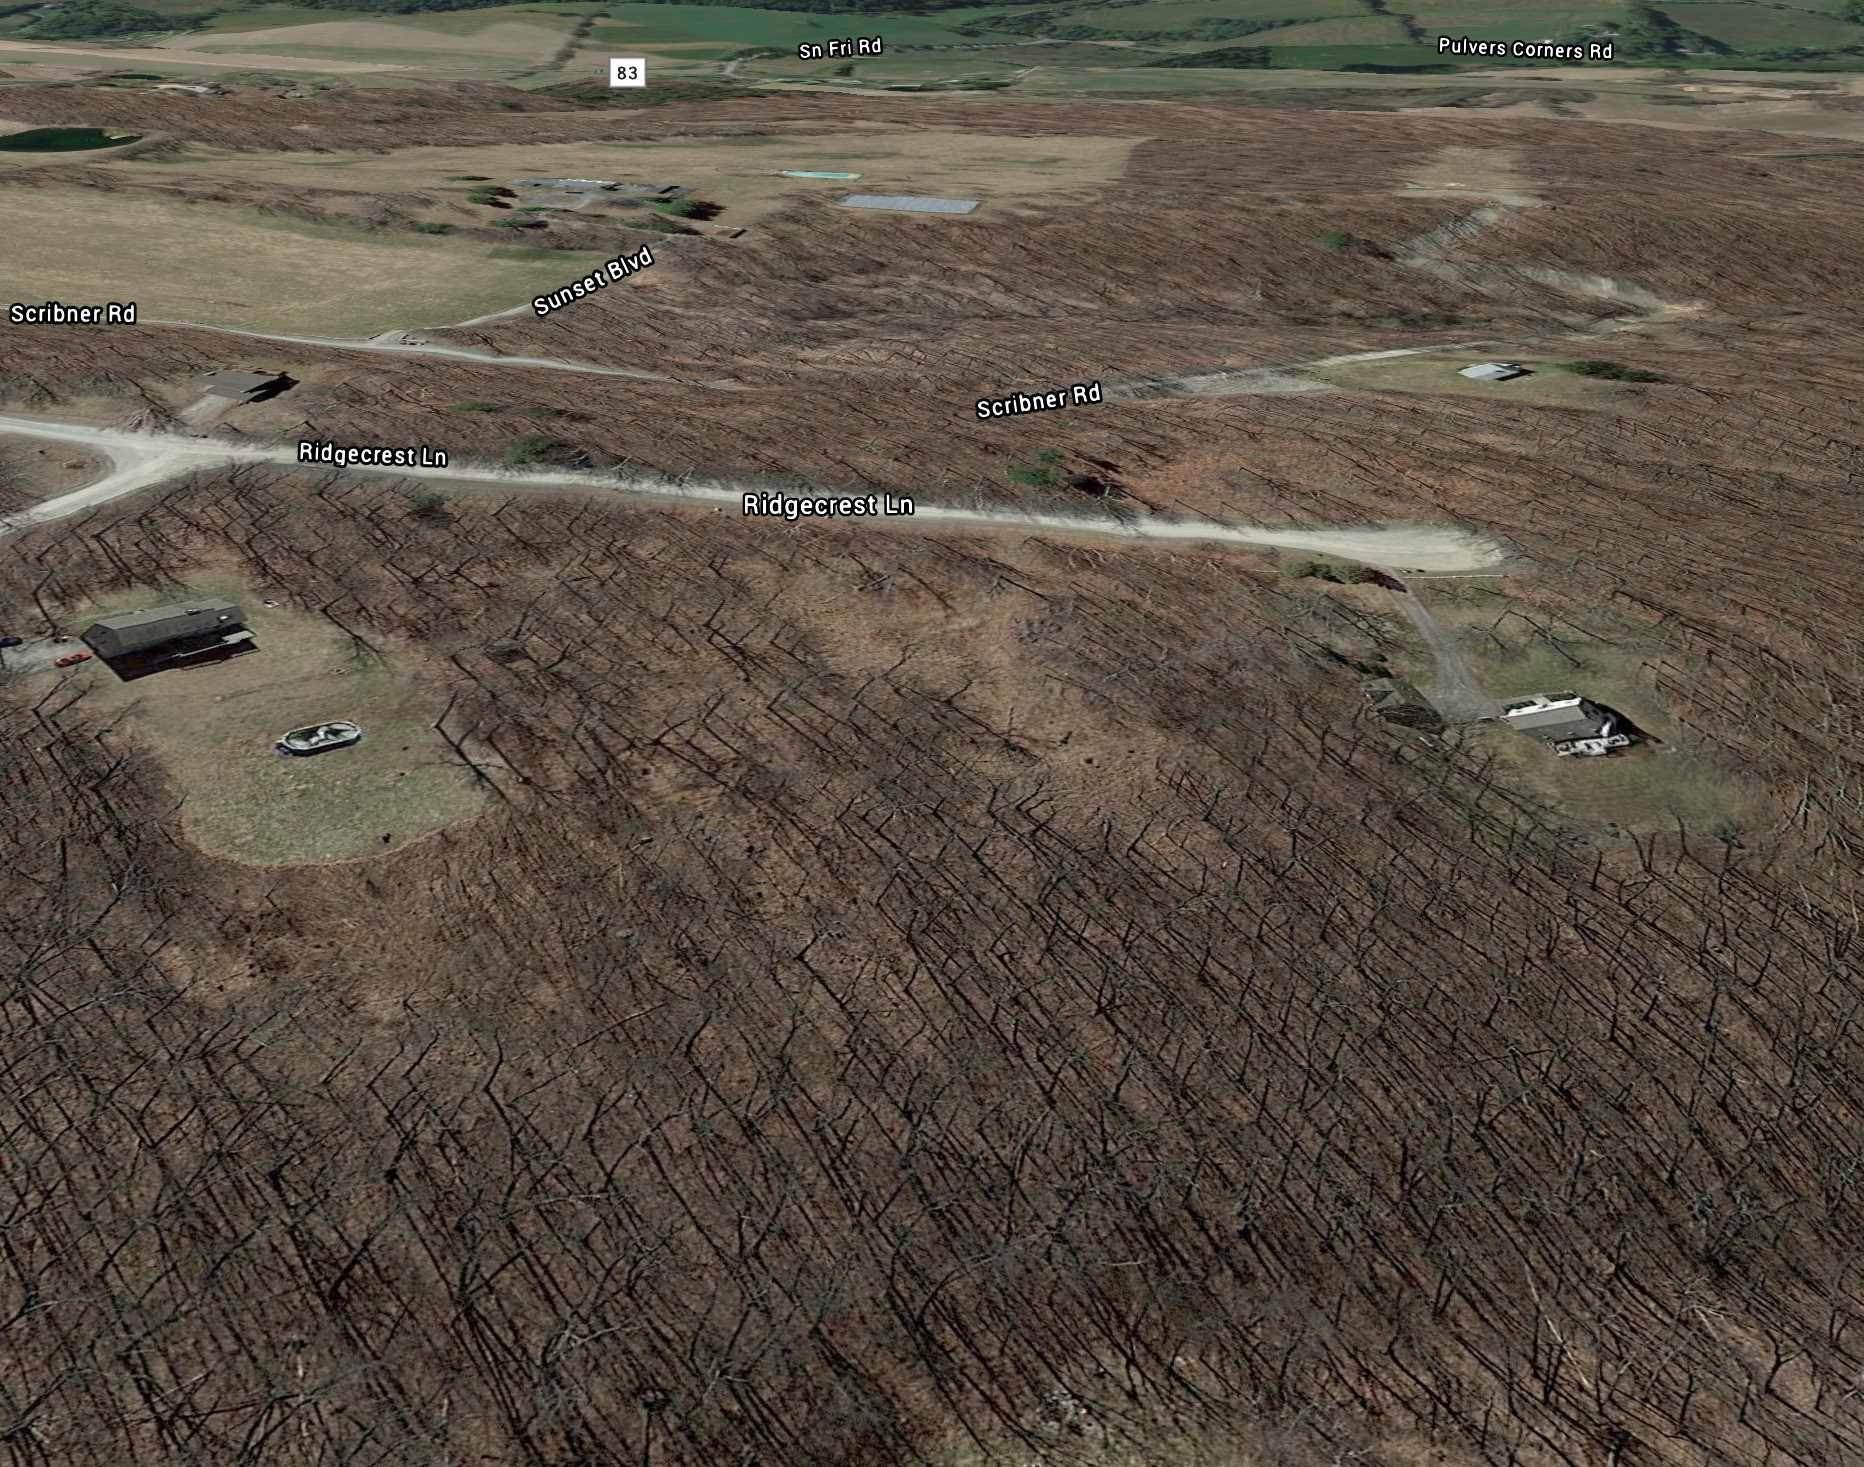 Land for Sale at 17 RIDGECREST Millerton, New York 12546 United States